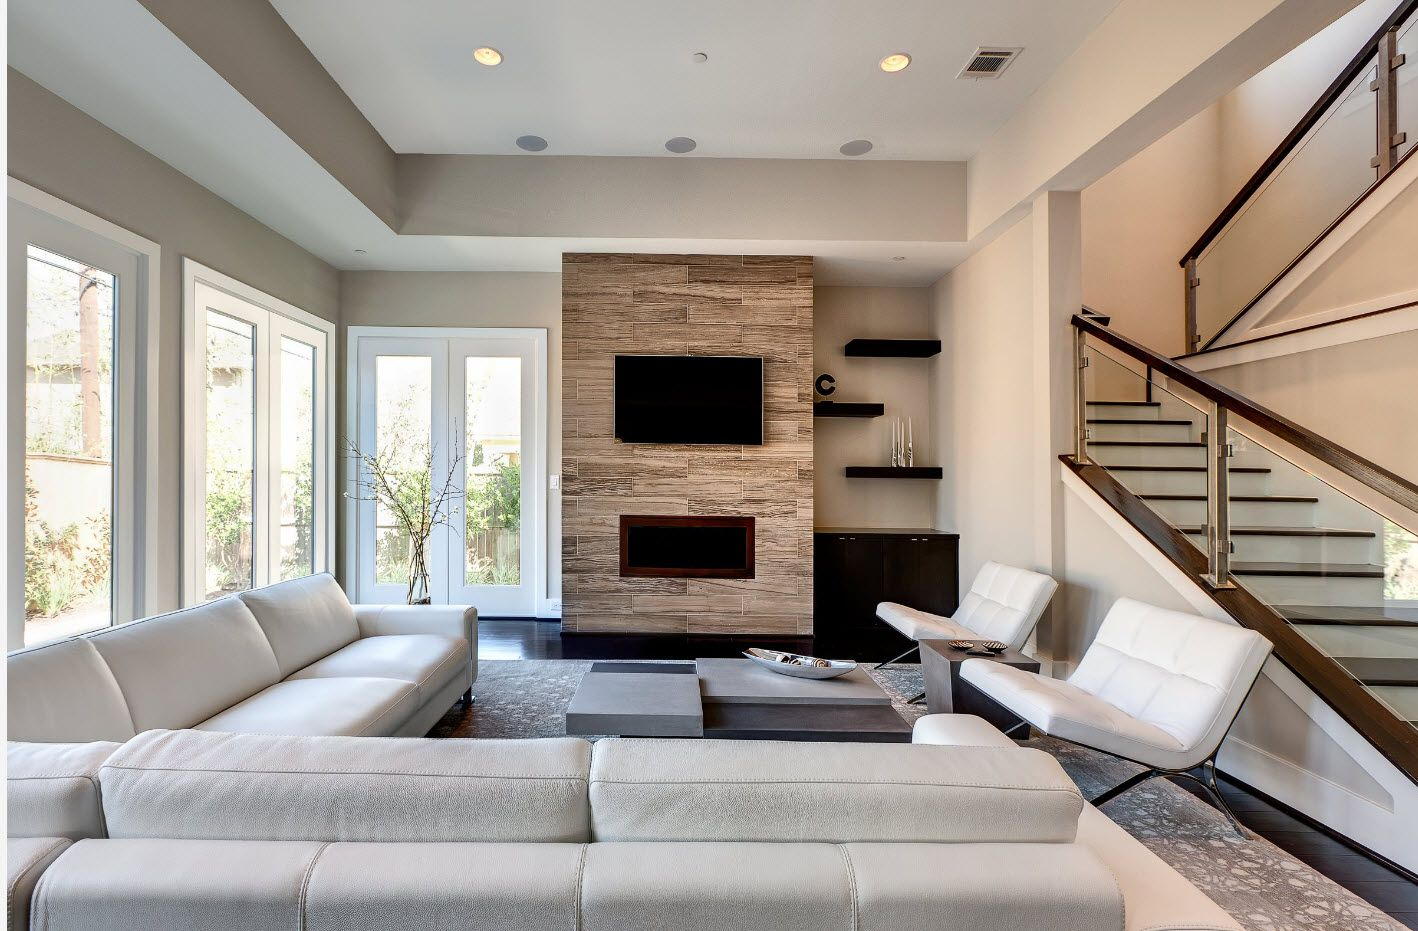 Modern design of the living room in the private house with textured accent wall in light brown color